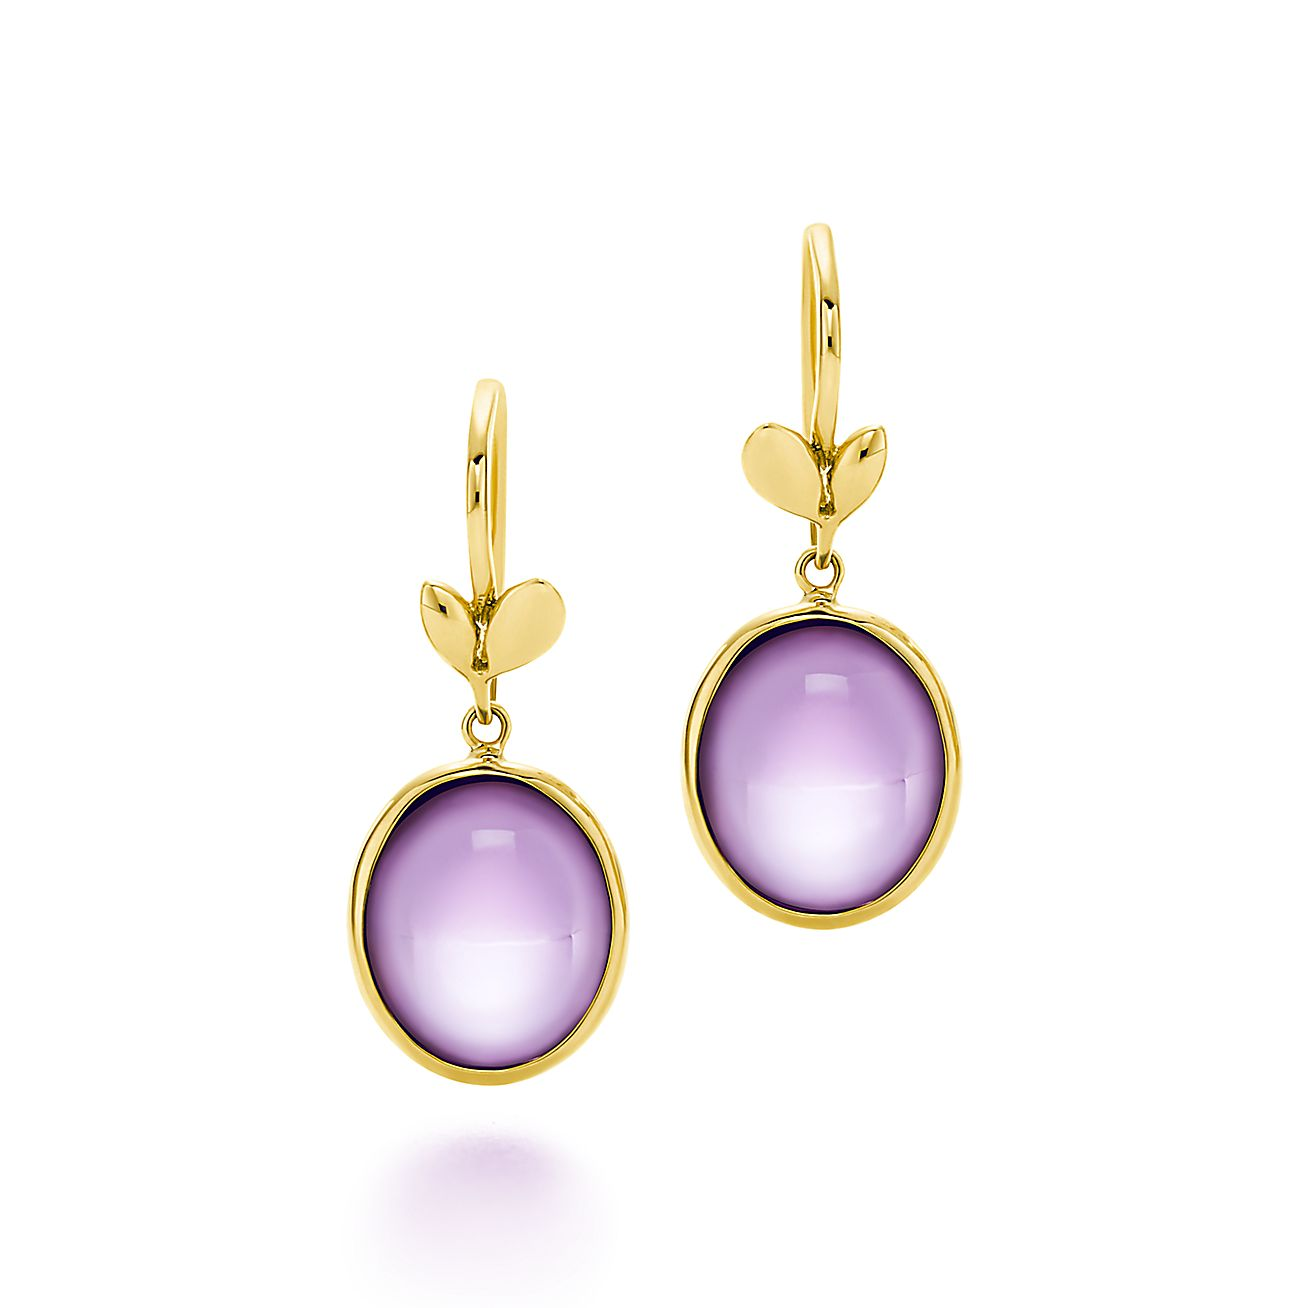 Paloma Pico Olive Leaf Drop Earrings In 18k Gold With Amethysts Tiffany Co